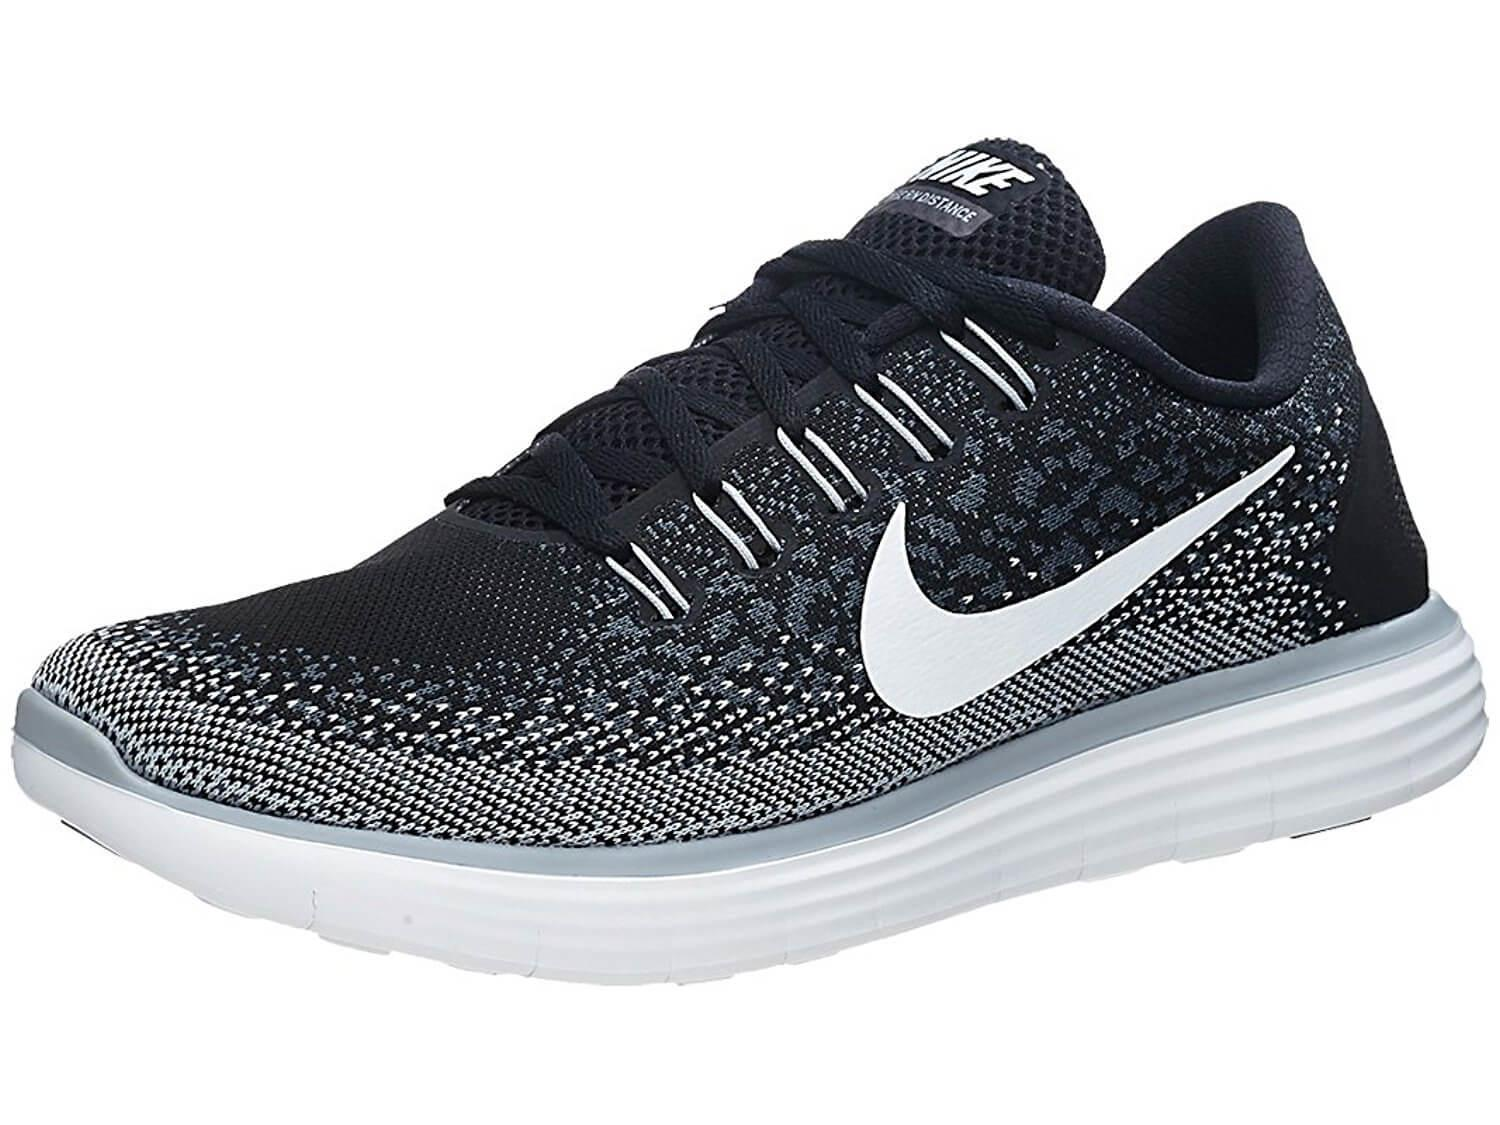 c75f73f0f630 The Nike Free RN Distance is an excellent all-around running shoe.